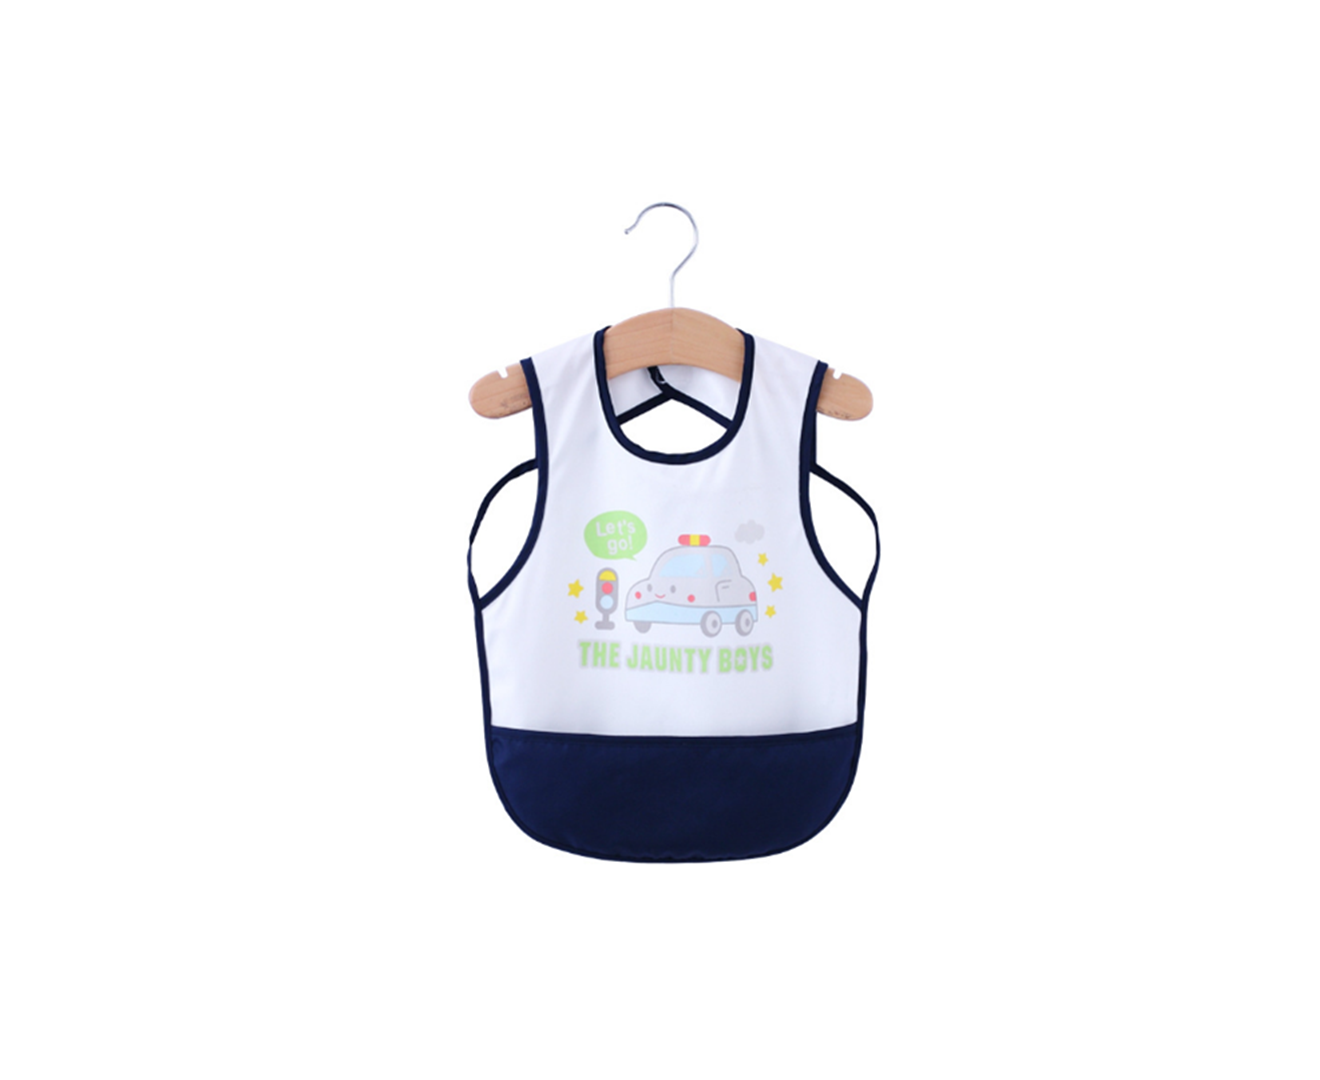 Baby Bibs Waterproof And Wipeable-Eat And Play Smock Apron - Navy